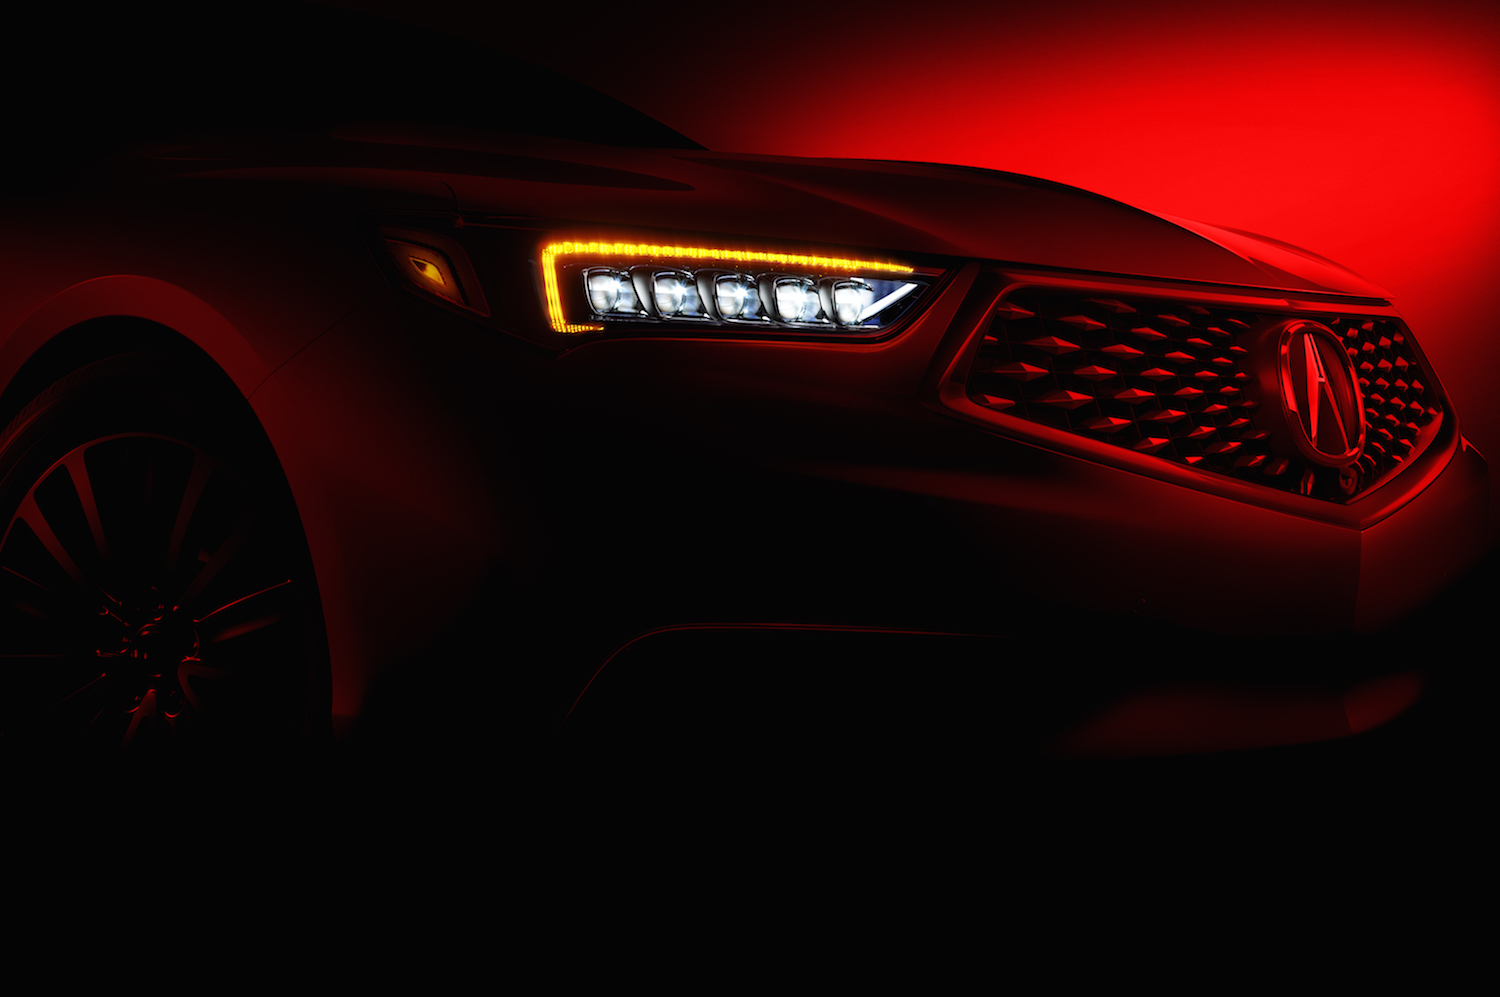 Acura TLX teased ahead of New York Auto Show